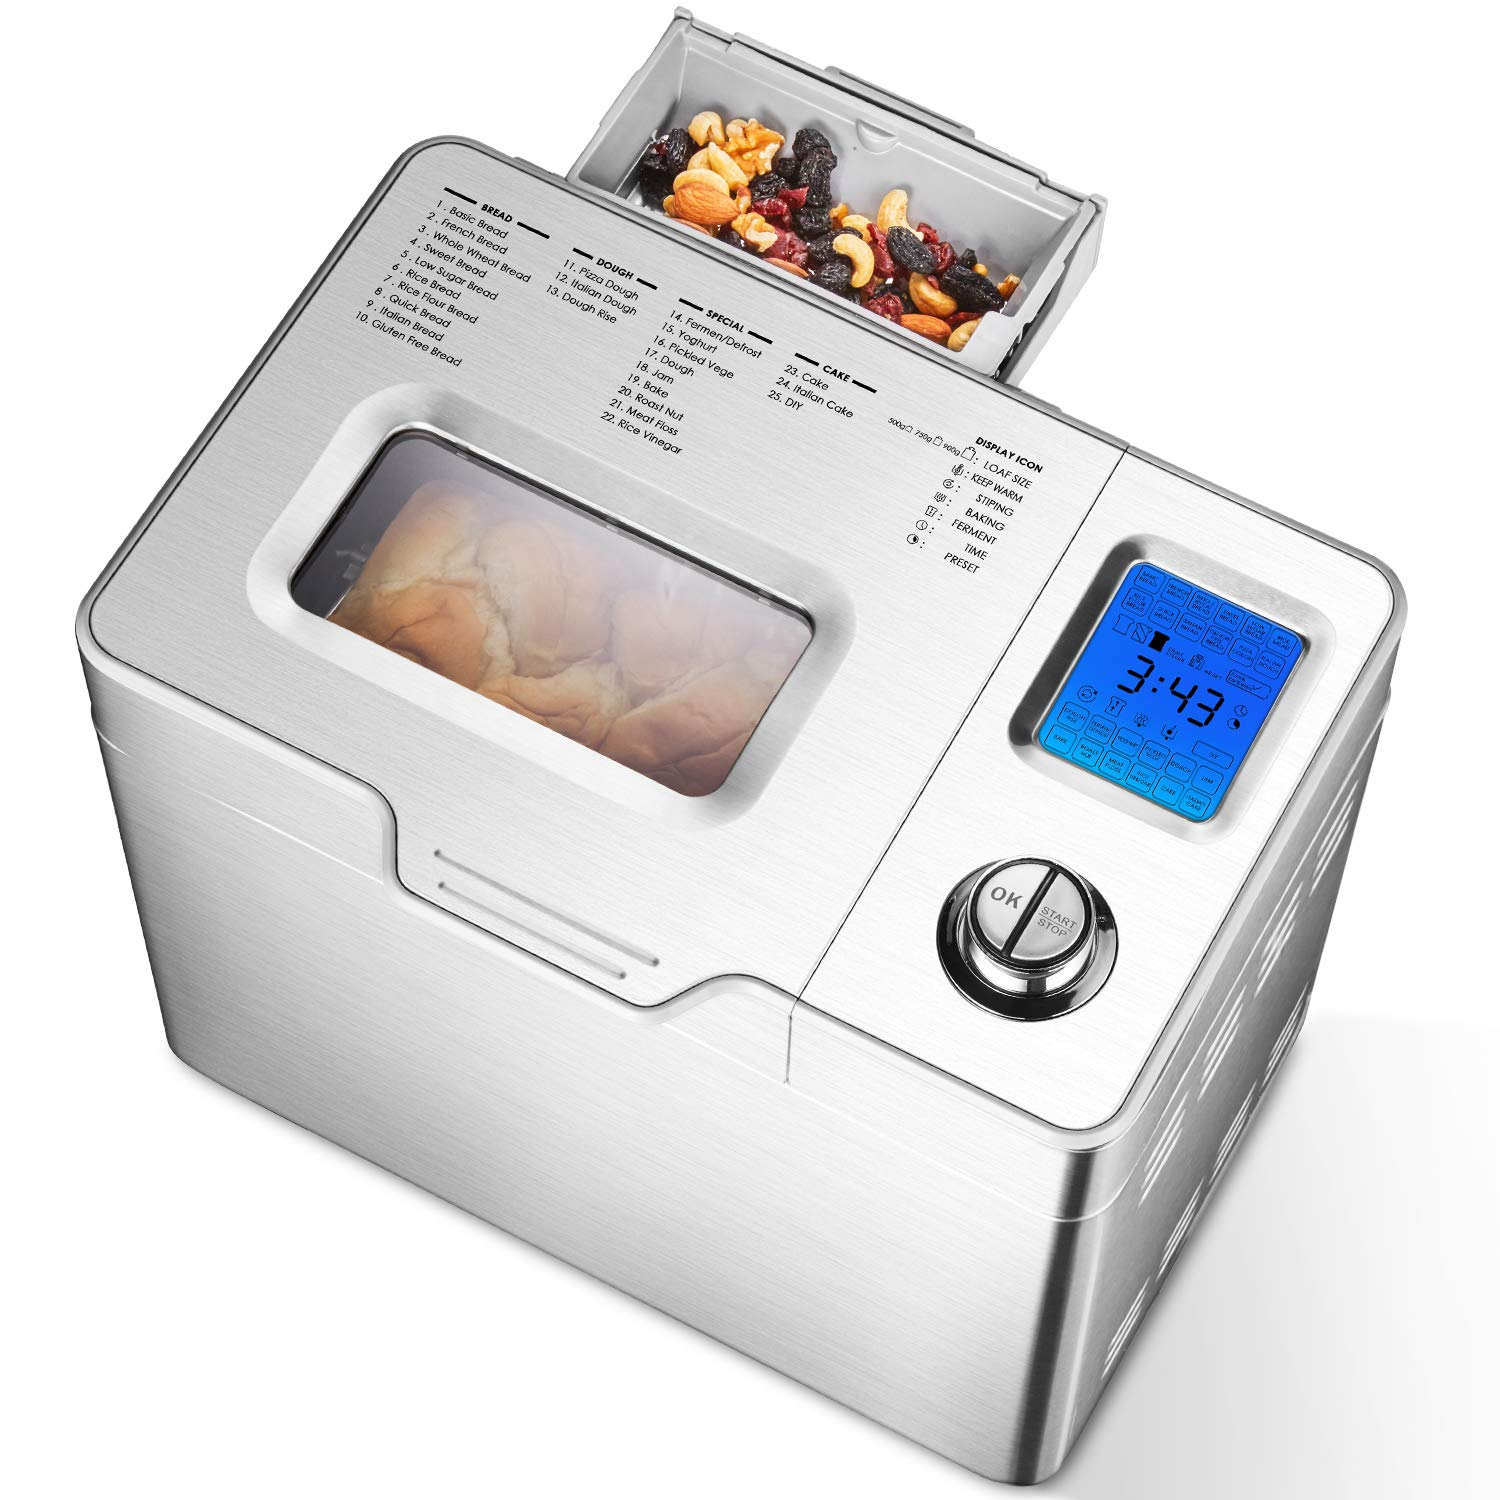 Aicok 2LB Custom Loaf Bread Maker, 25-In-1 Automatic Programmable Bread Machine, Large LCD Display, Fruit Nut Dispenser